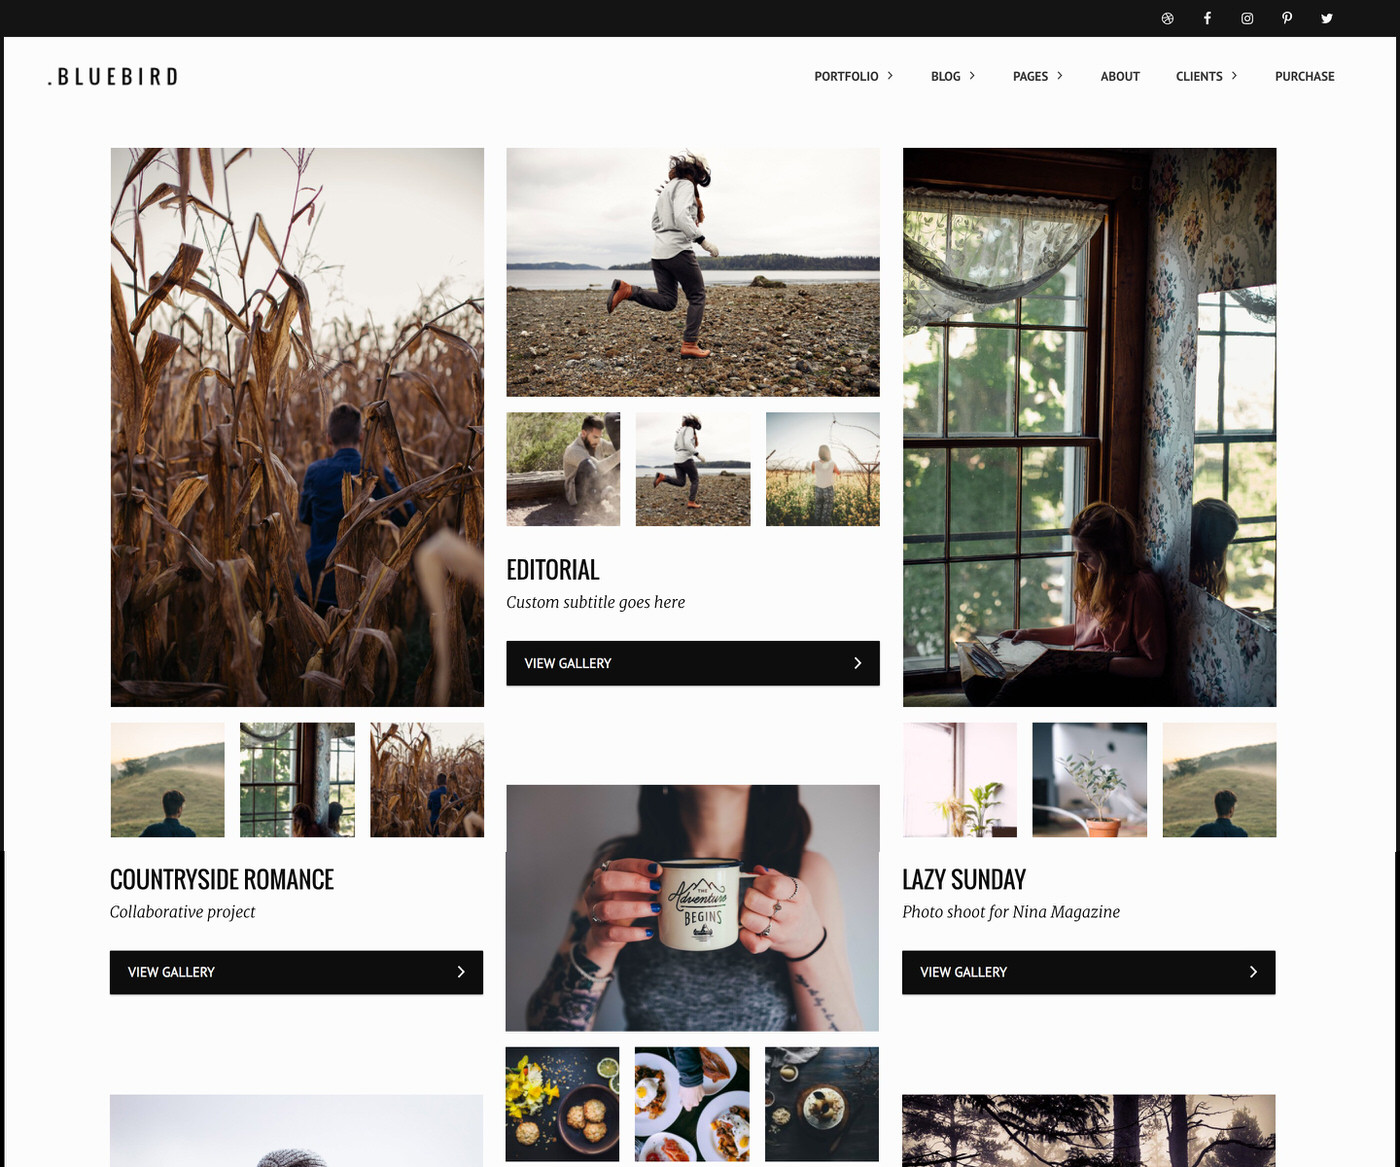 Bluebird Photography Portfolio WordPress Theme by Colormelon